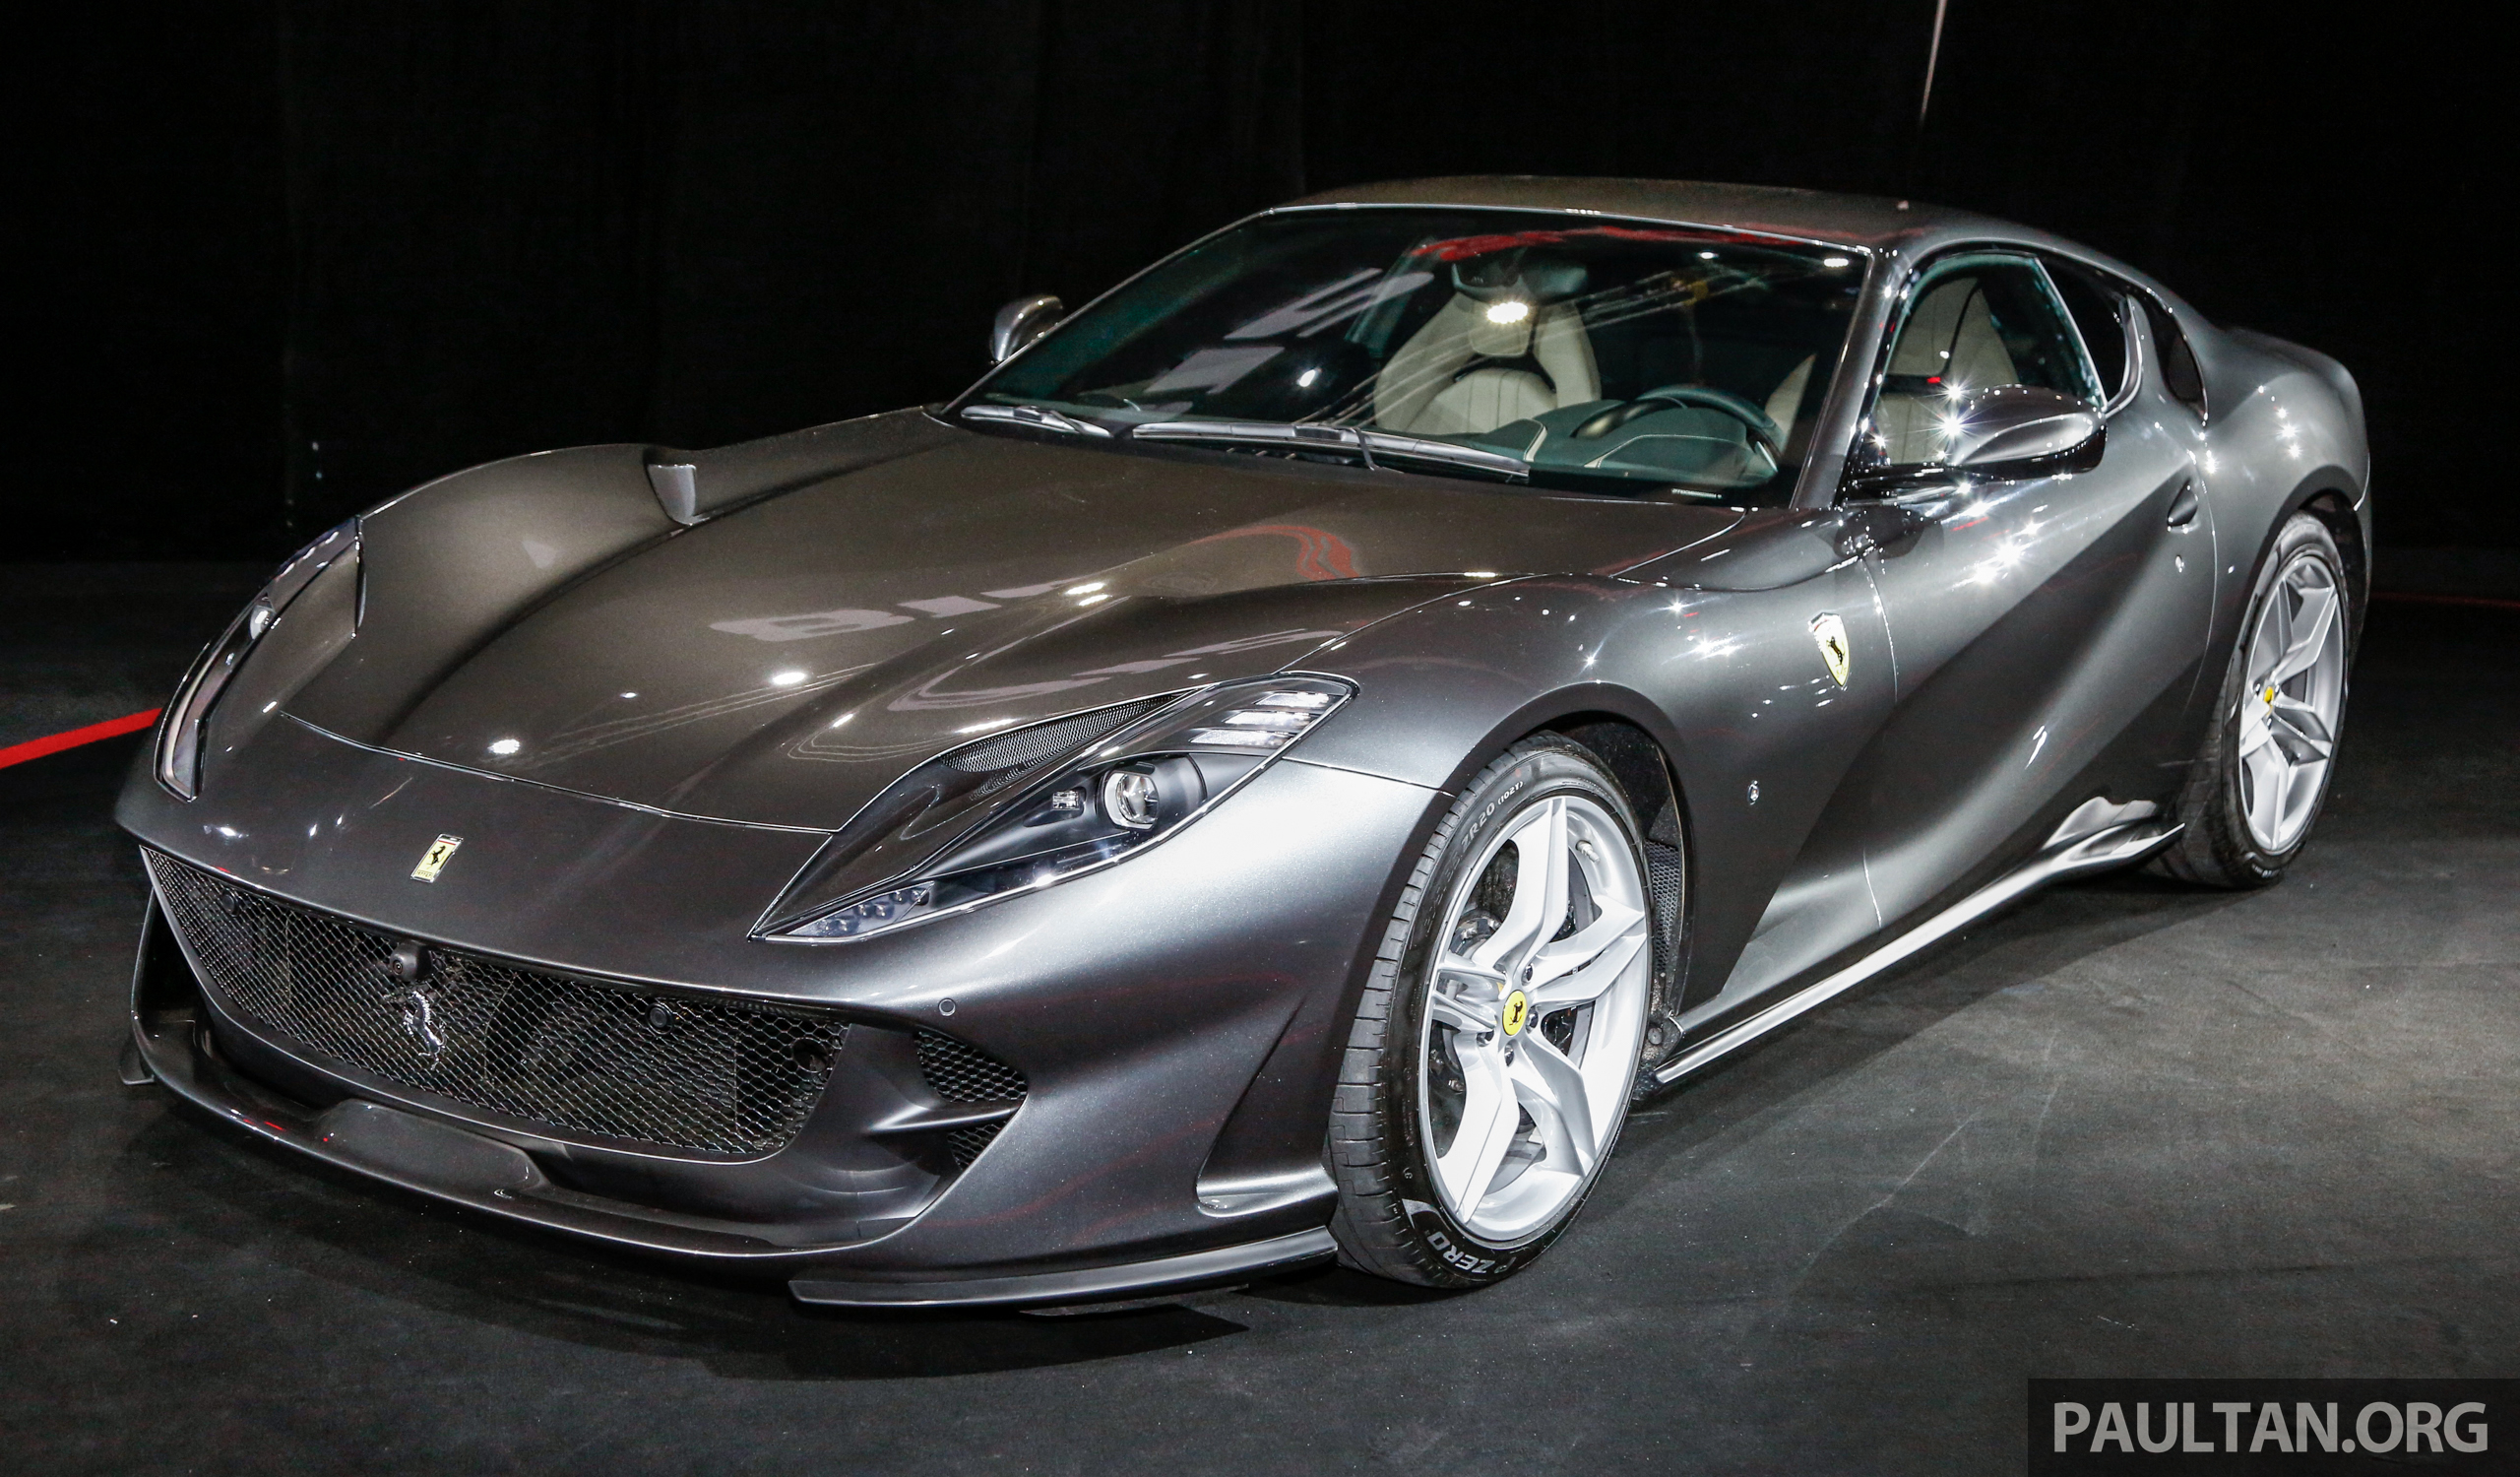 Super Fast Cars For Sale